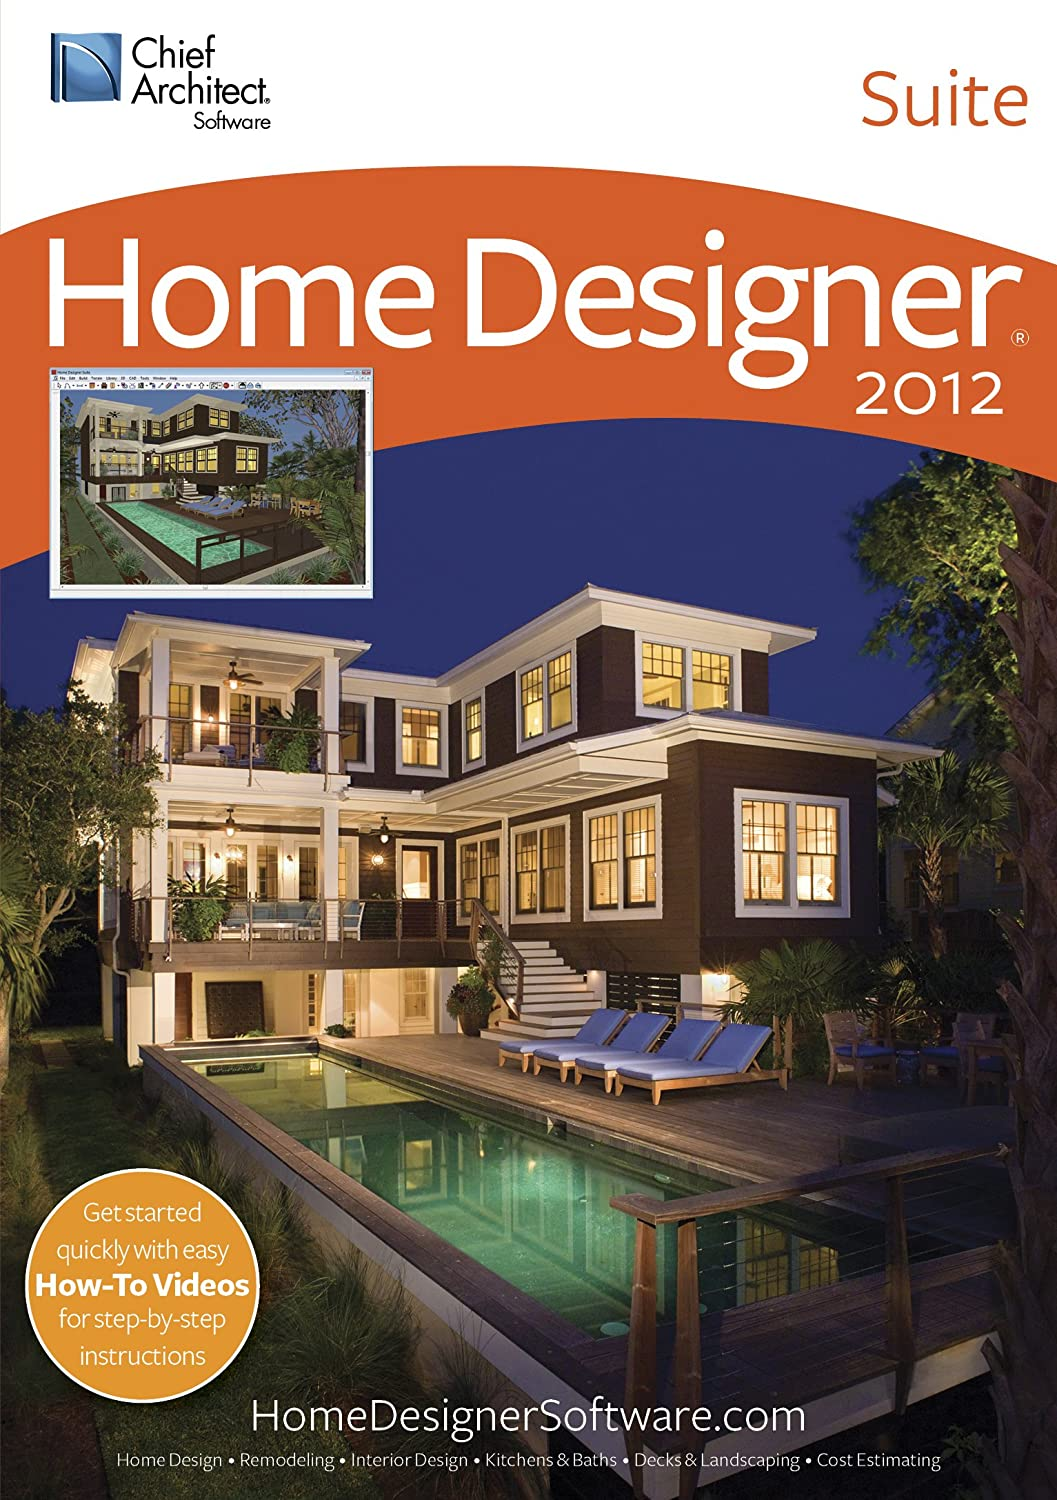 amazoncom home designer suite 2012 download software - Architect Home Designer